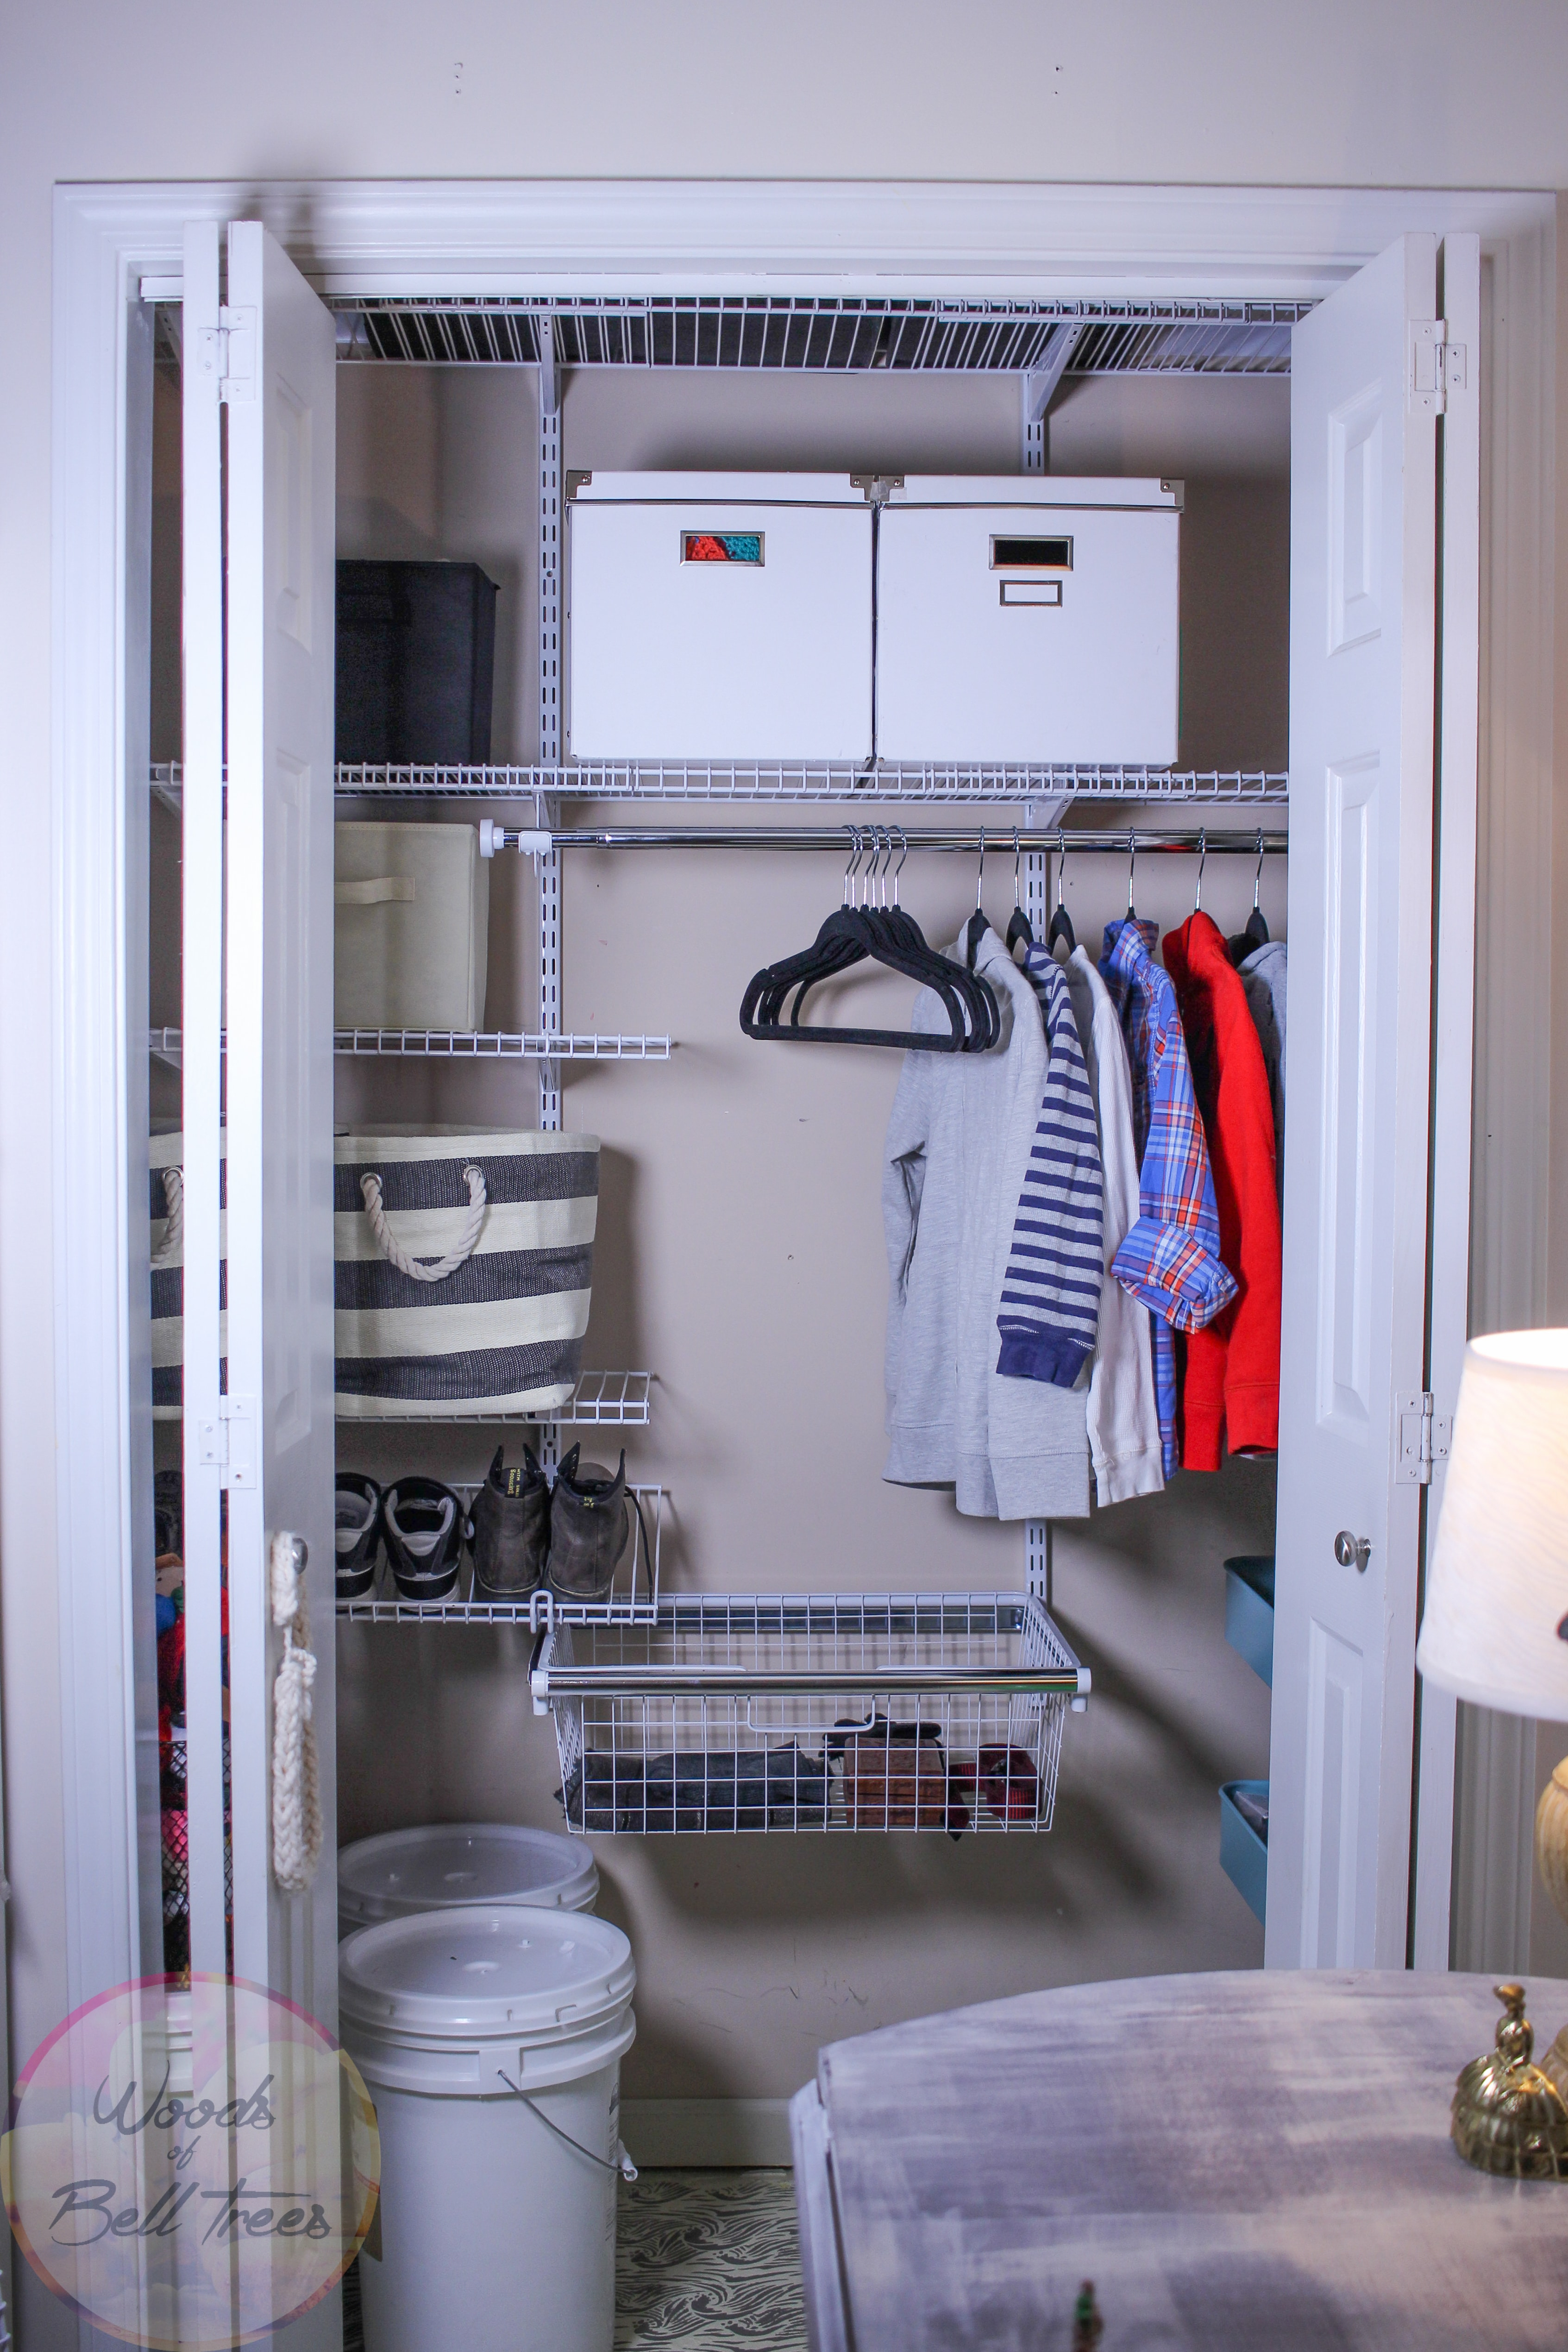 Lowes Wire Shelving | Wire Storage Cubes Lowes | Pantry Shelving Lowes